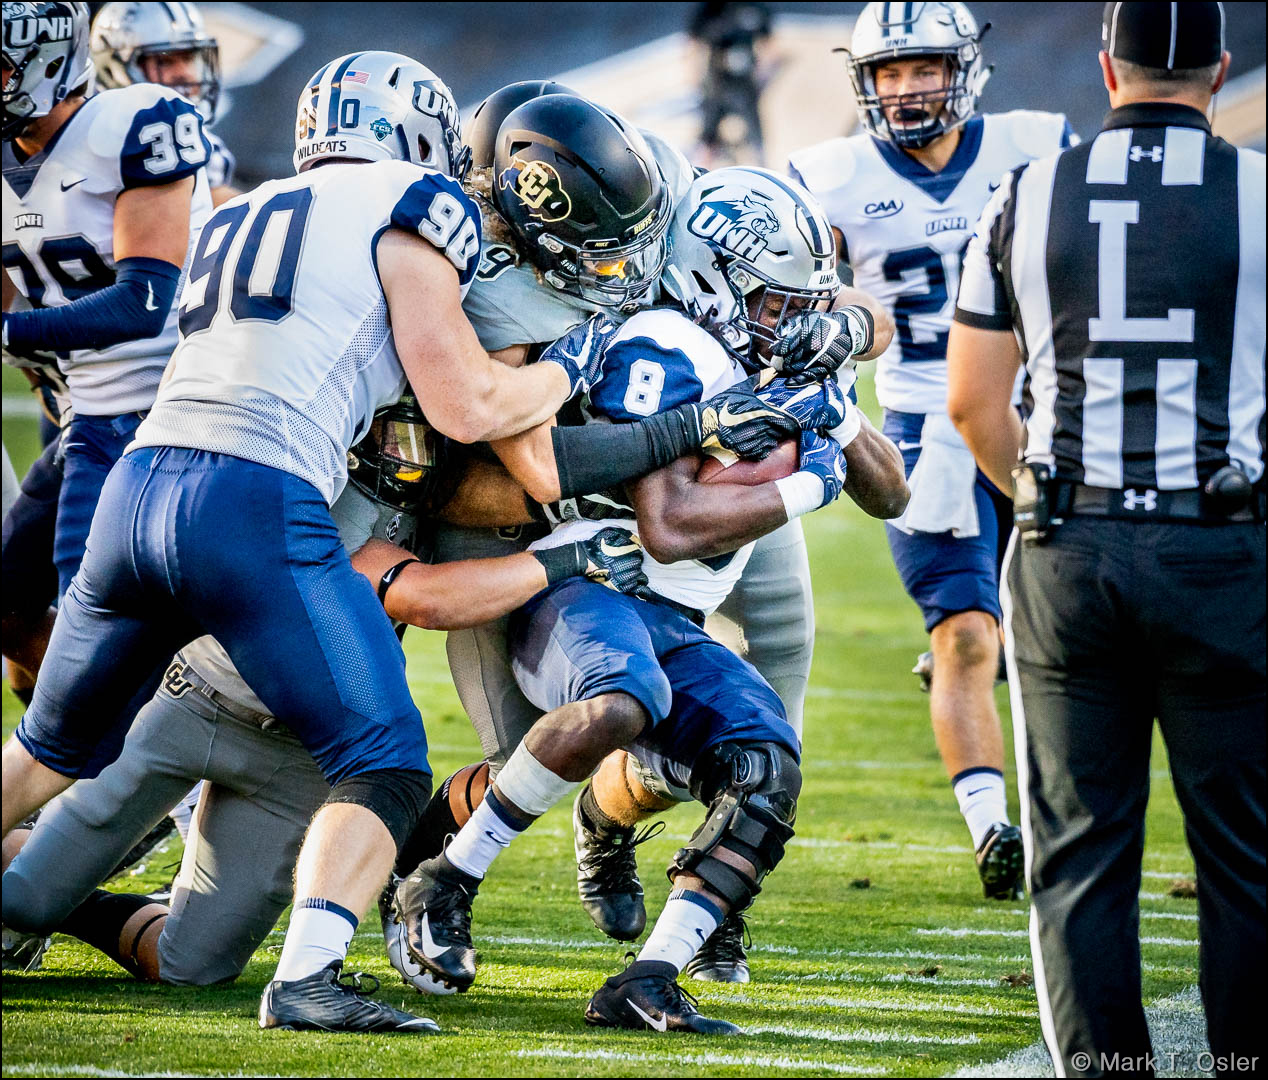 UNH's Carson Leary (#90) tries to move the pile forward as kickoff returner Trevon Bryant (#8) is wrapped up by CU's Aaron Maddox (#9) and Javier Edwards (#33, underneath) on a kickoff return following a CU field goal near in the third quarter.